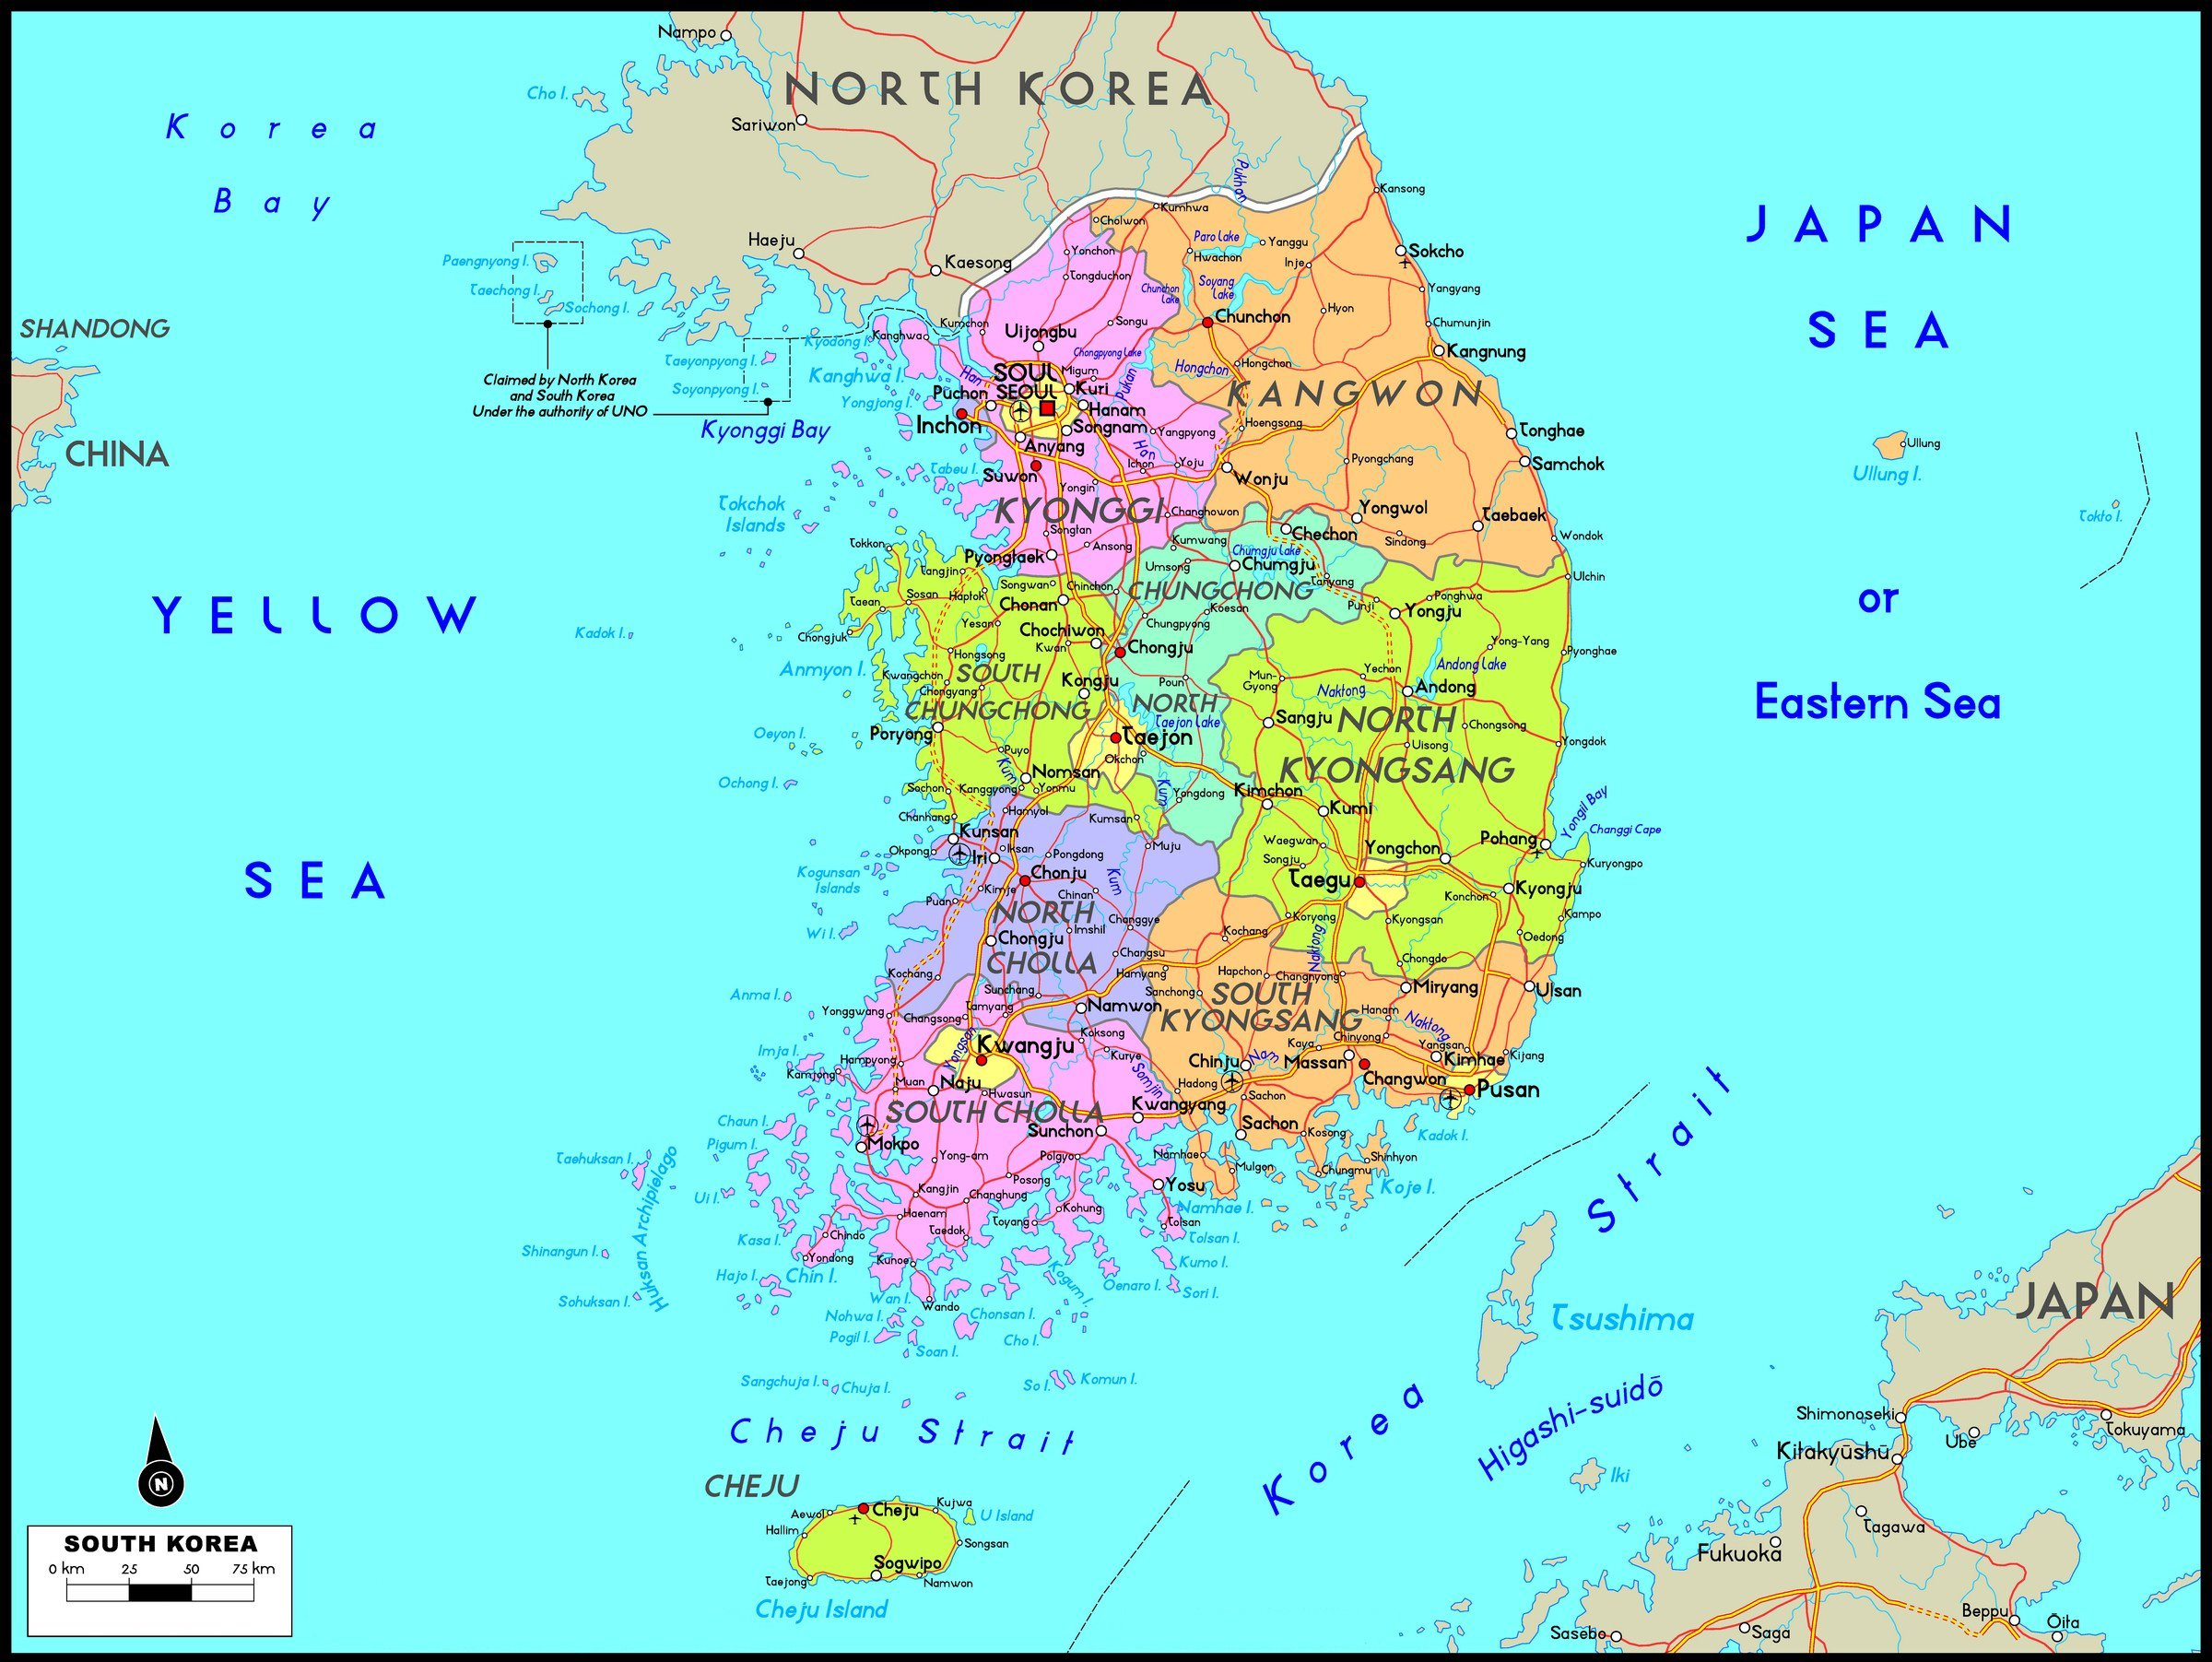 Map Of South Korea South Korea Maps | Printable Maps of South Korea for Download Map Of South Korea